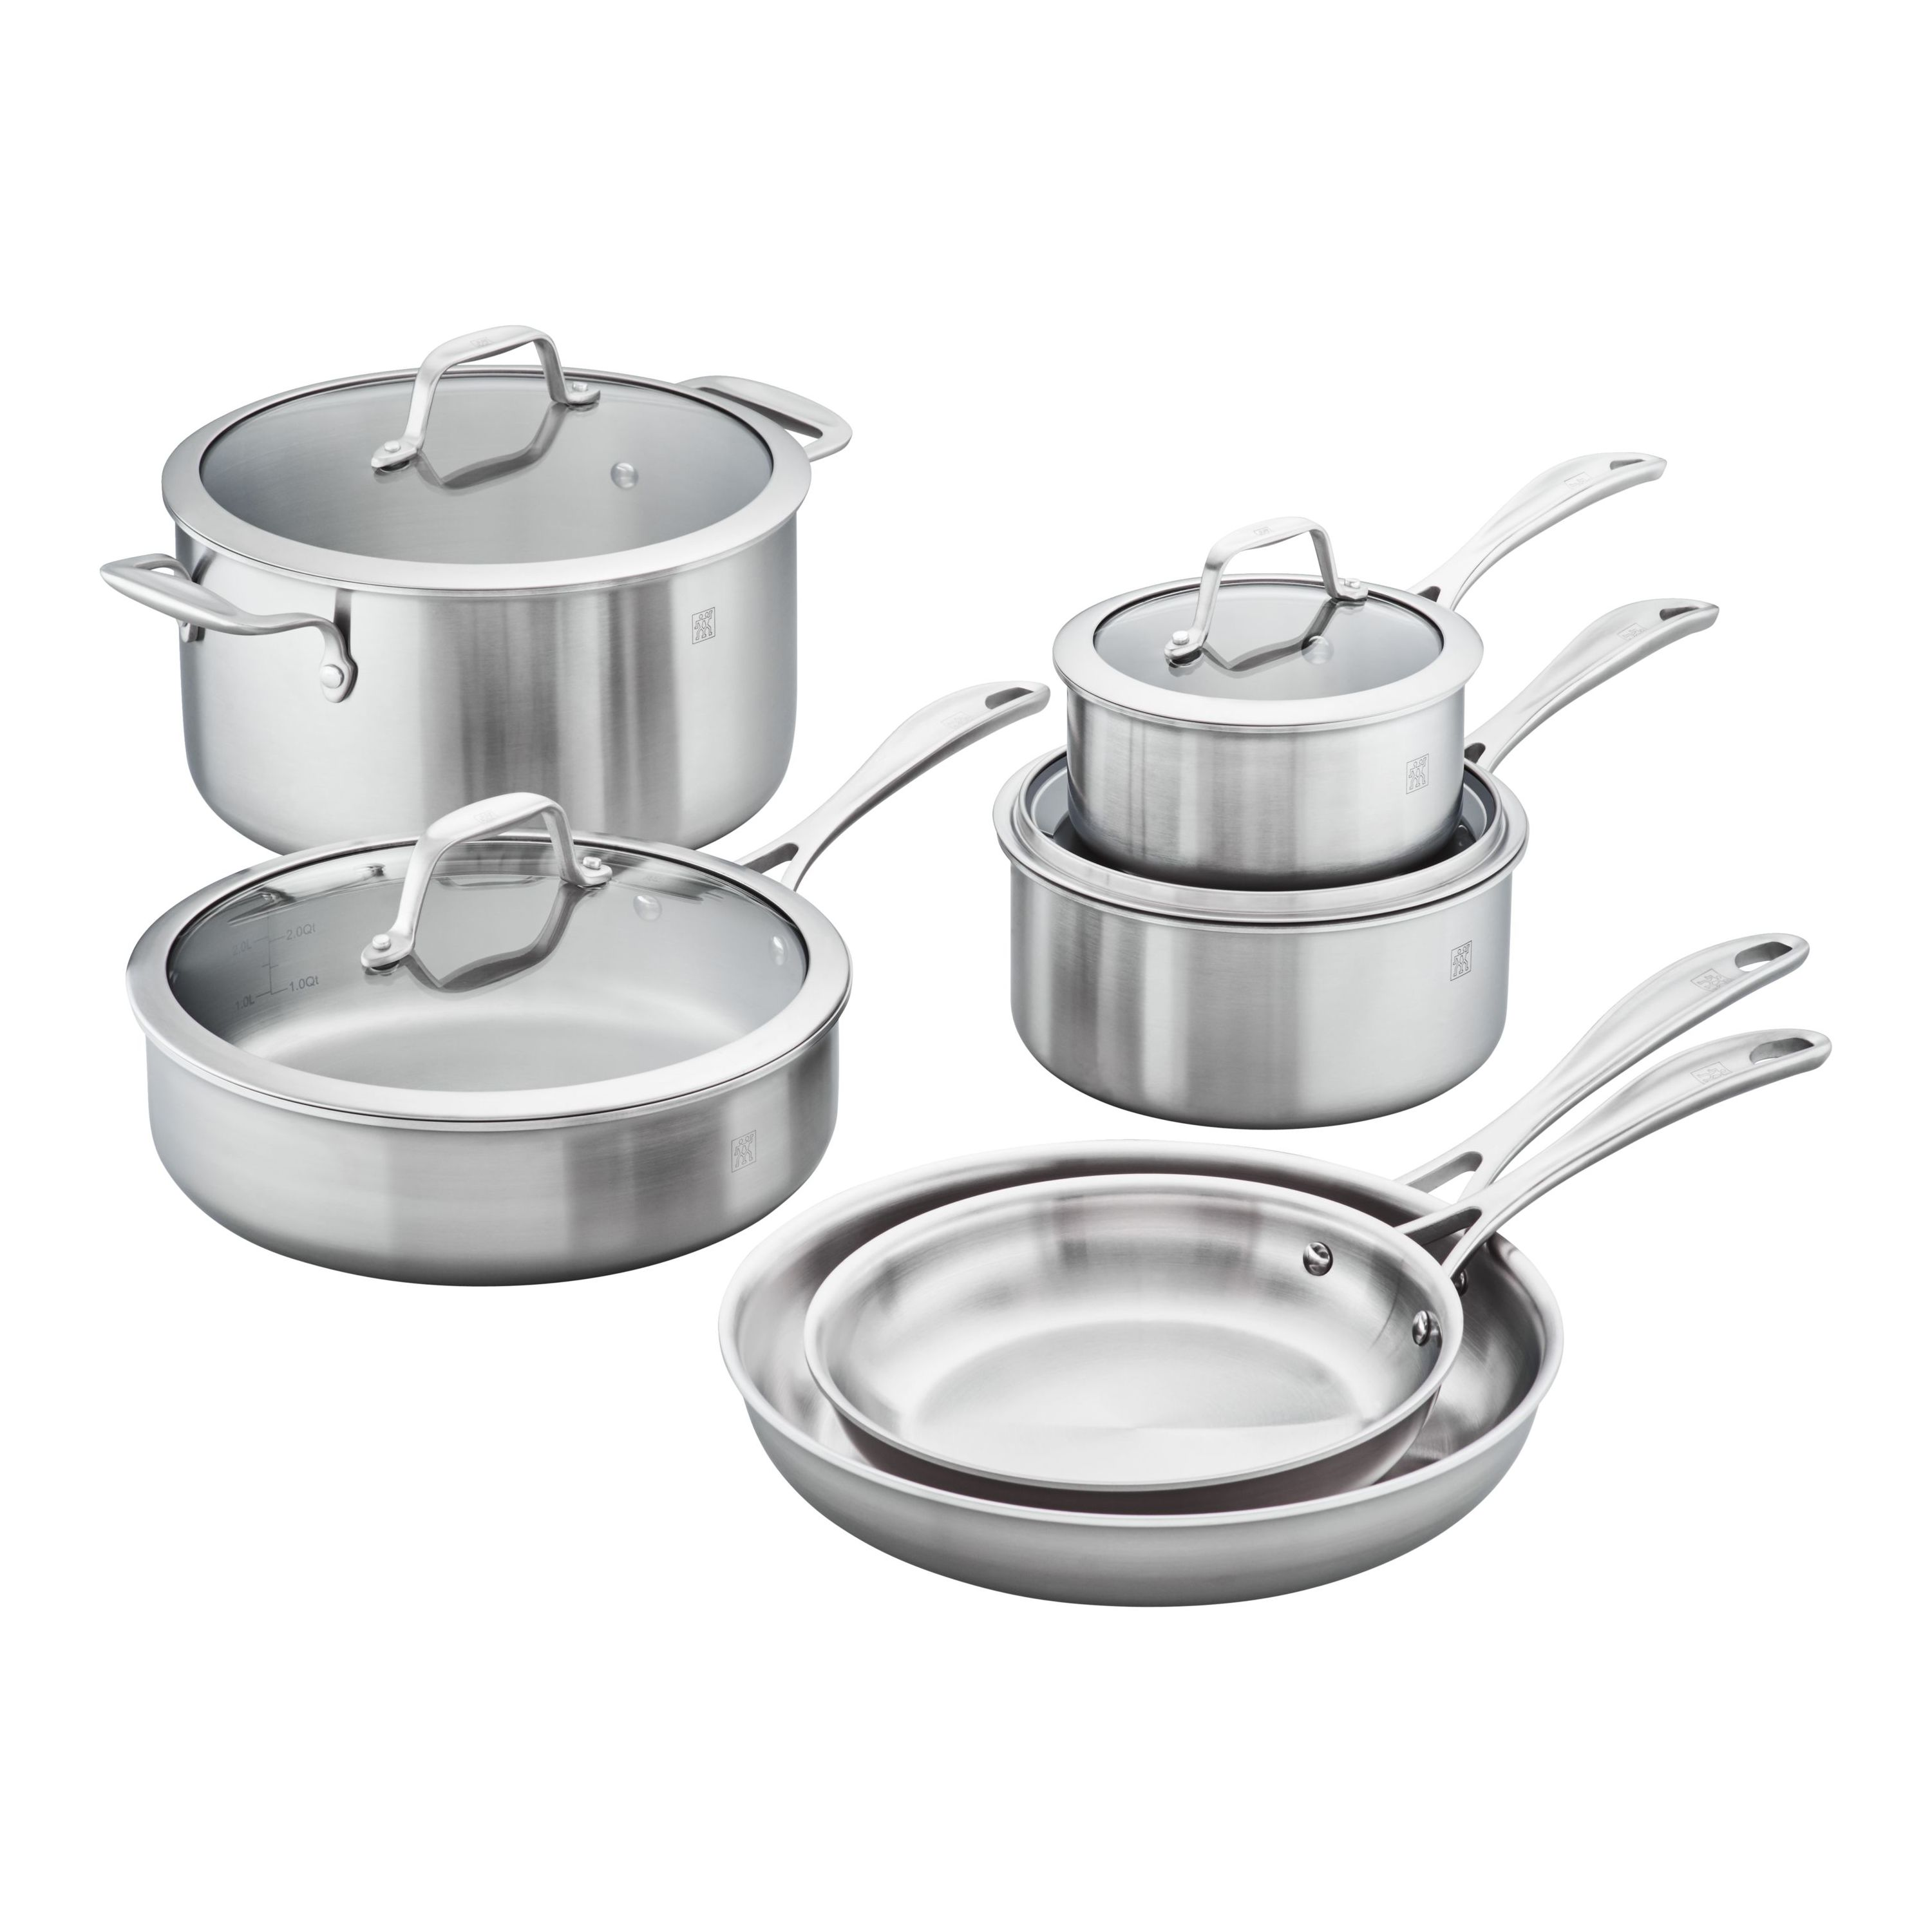 Zwilling Spirit Stainless 3 Ply 10 Pc Stainless Steel Cookware Set Official Zwilling Shop